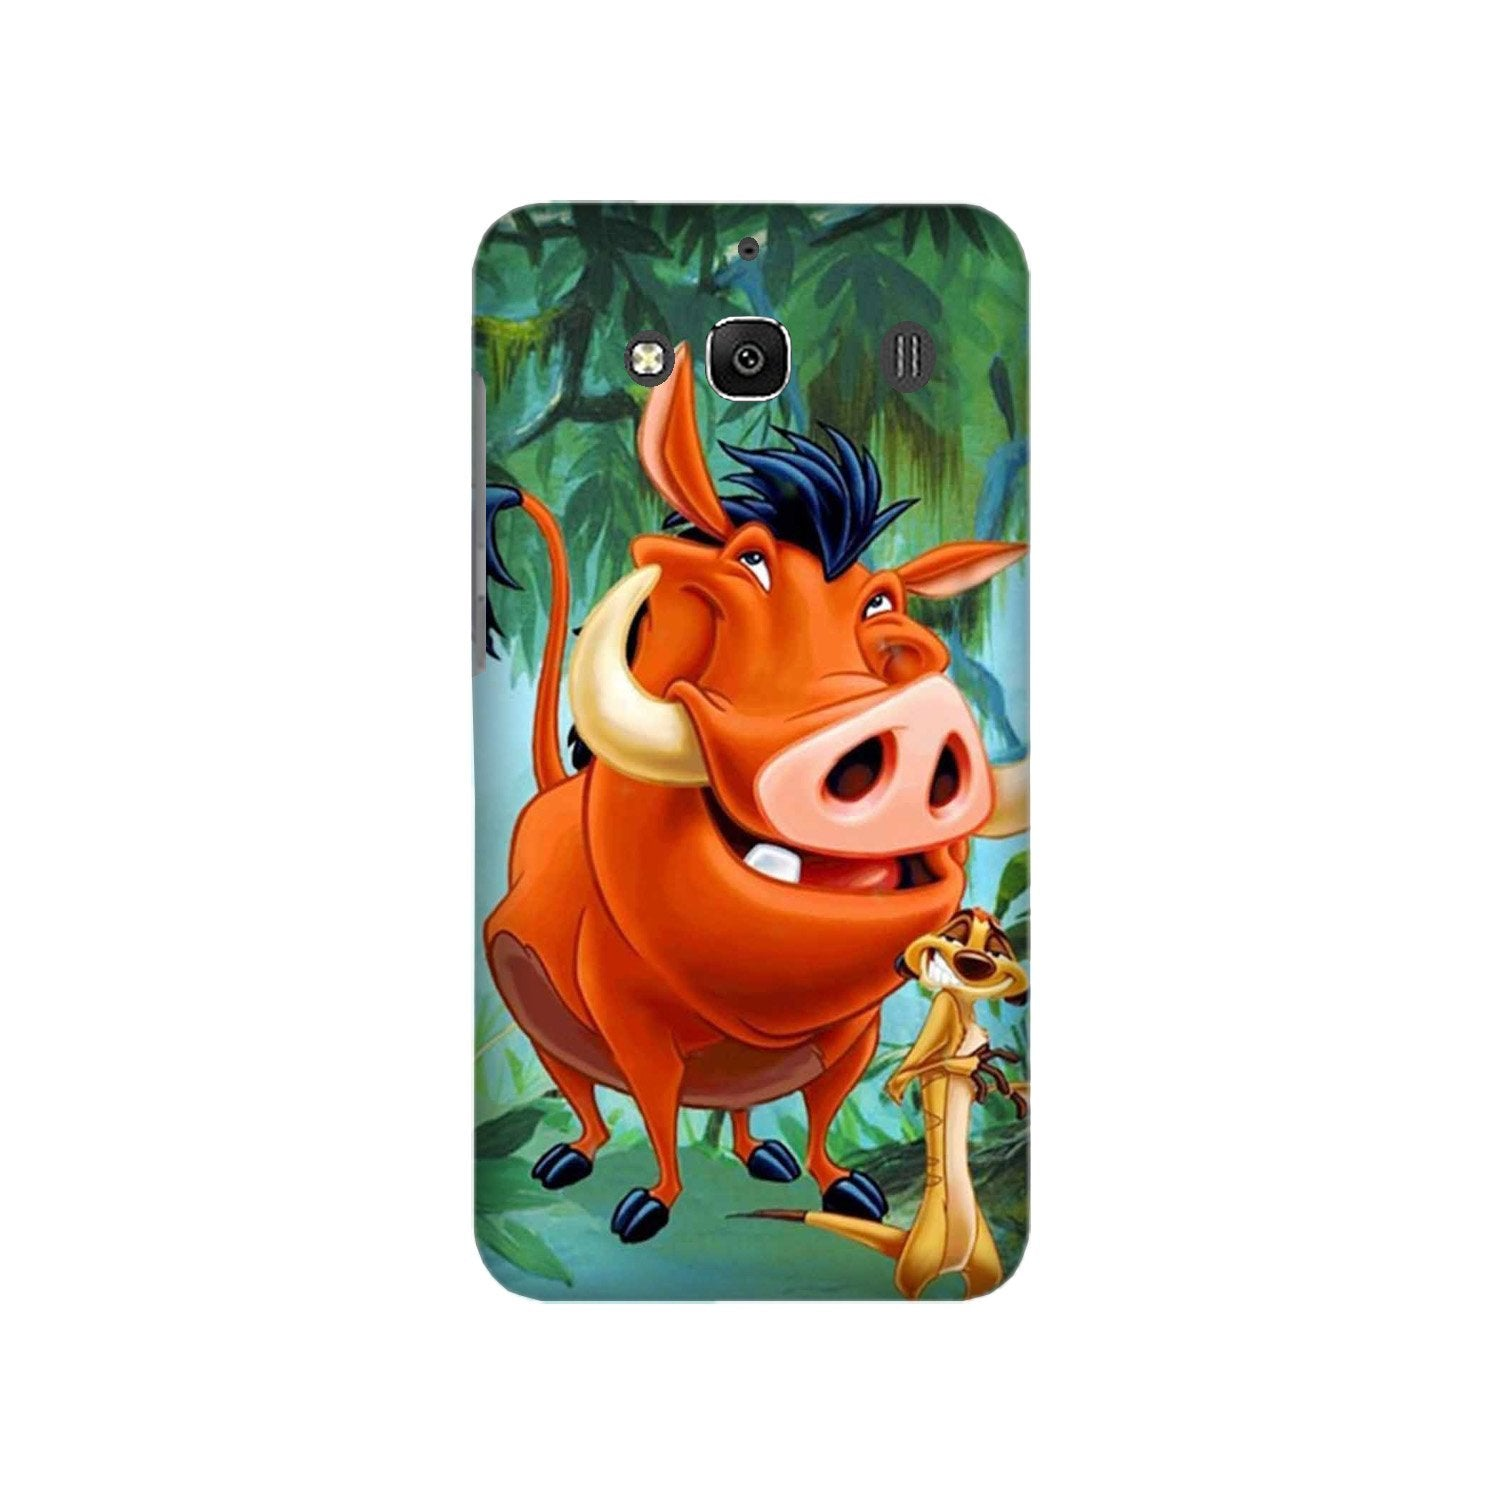 Timon and Pumbaa Mobile Back Case for Redmi 2 Prime  (Design - 305)